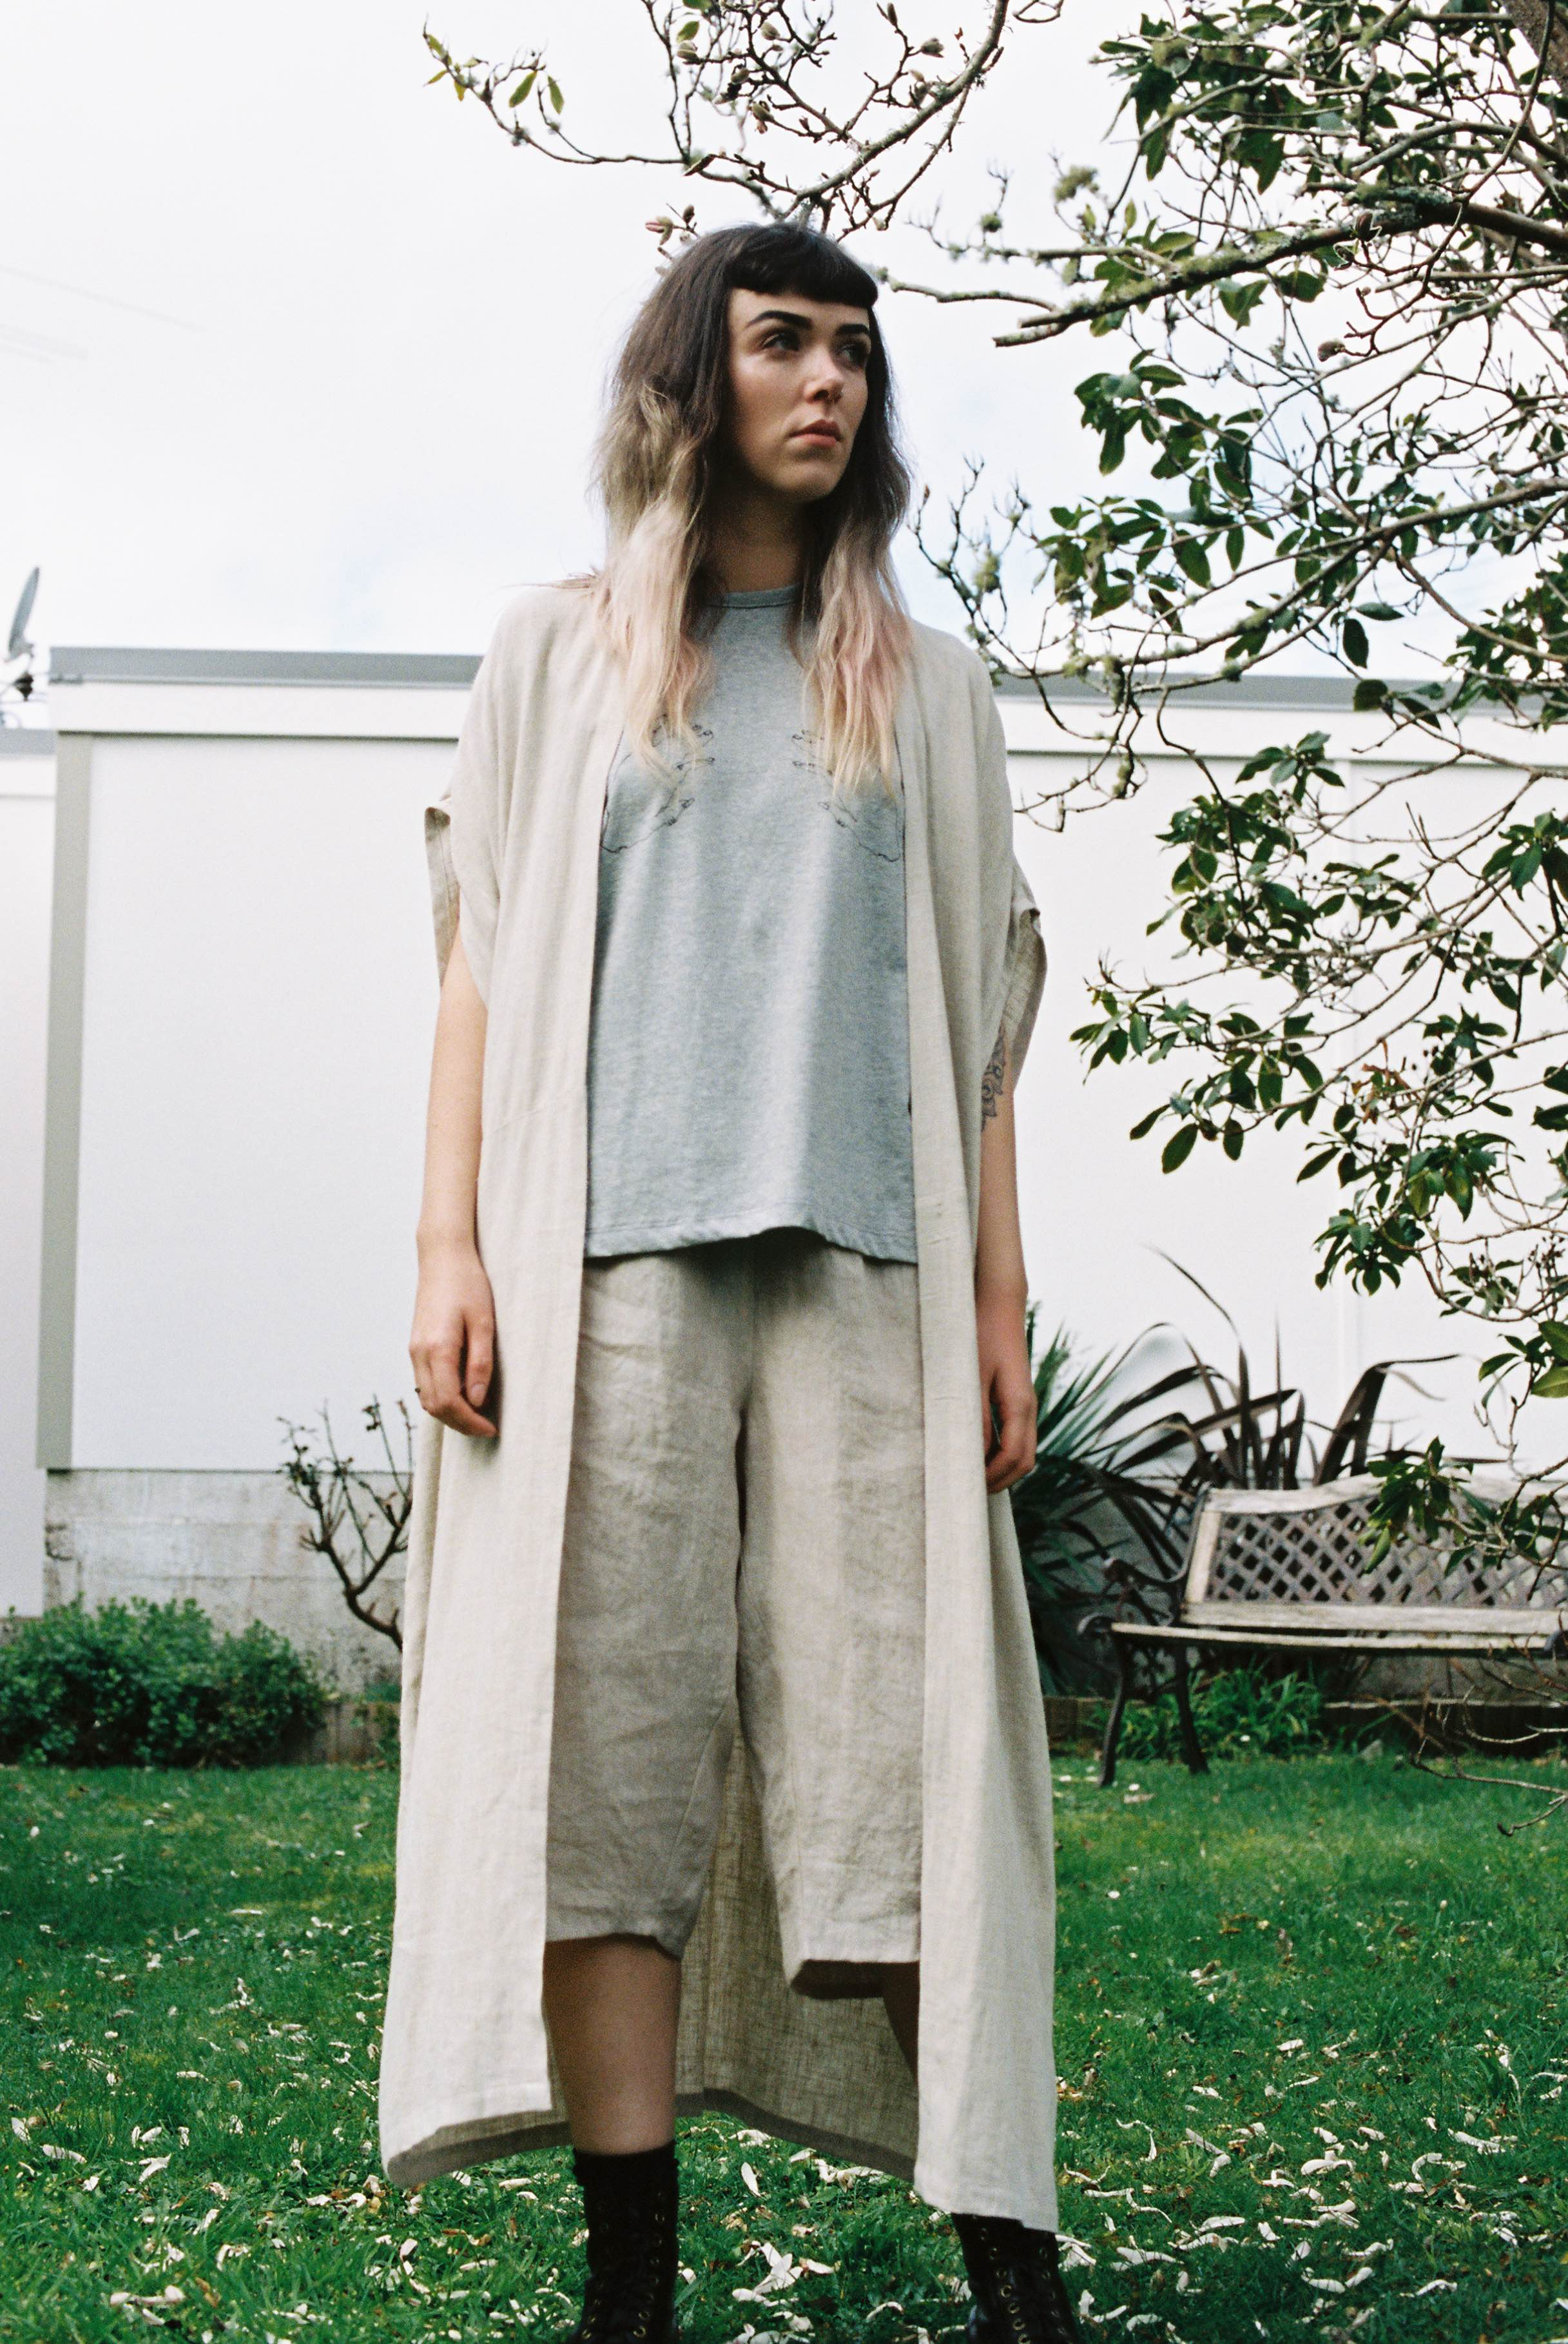 tasogare long+sara top+ obsidian shorts